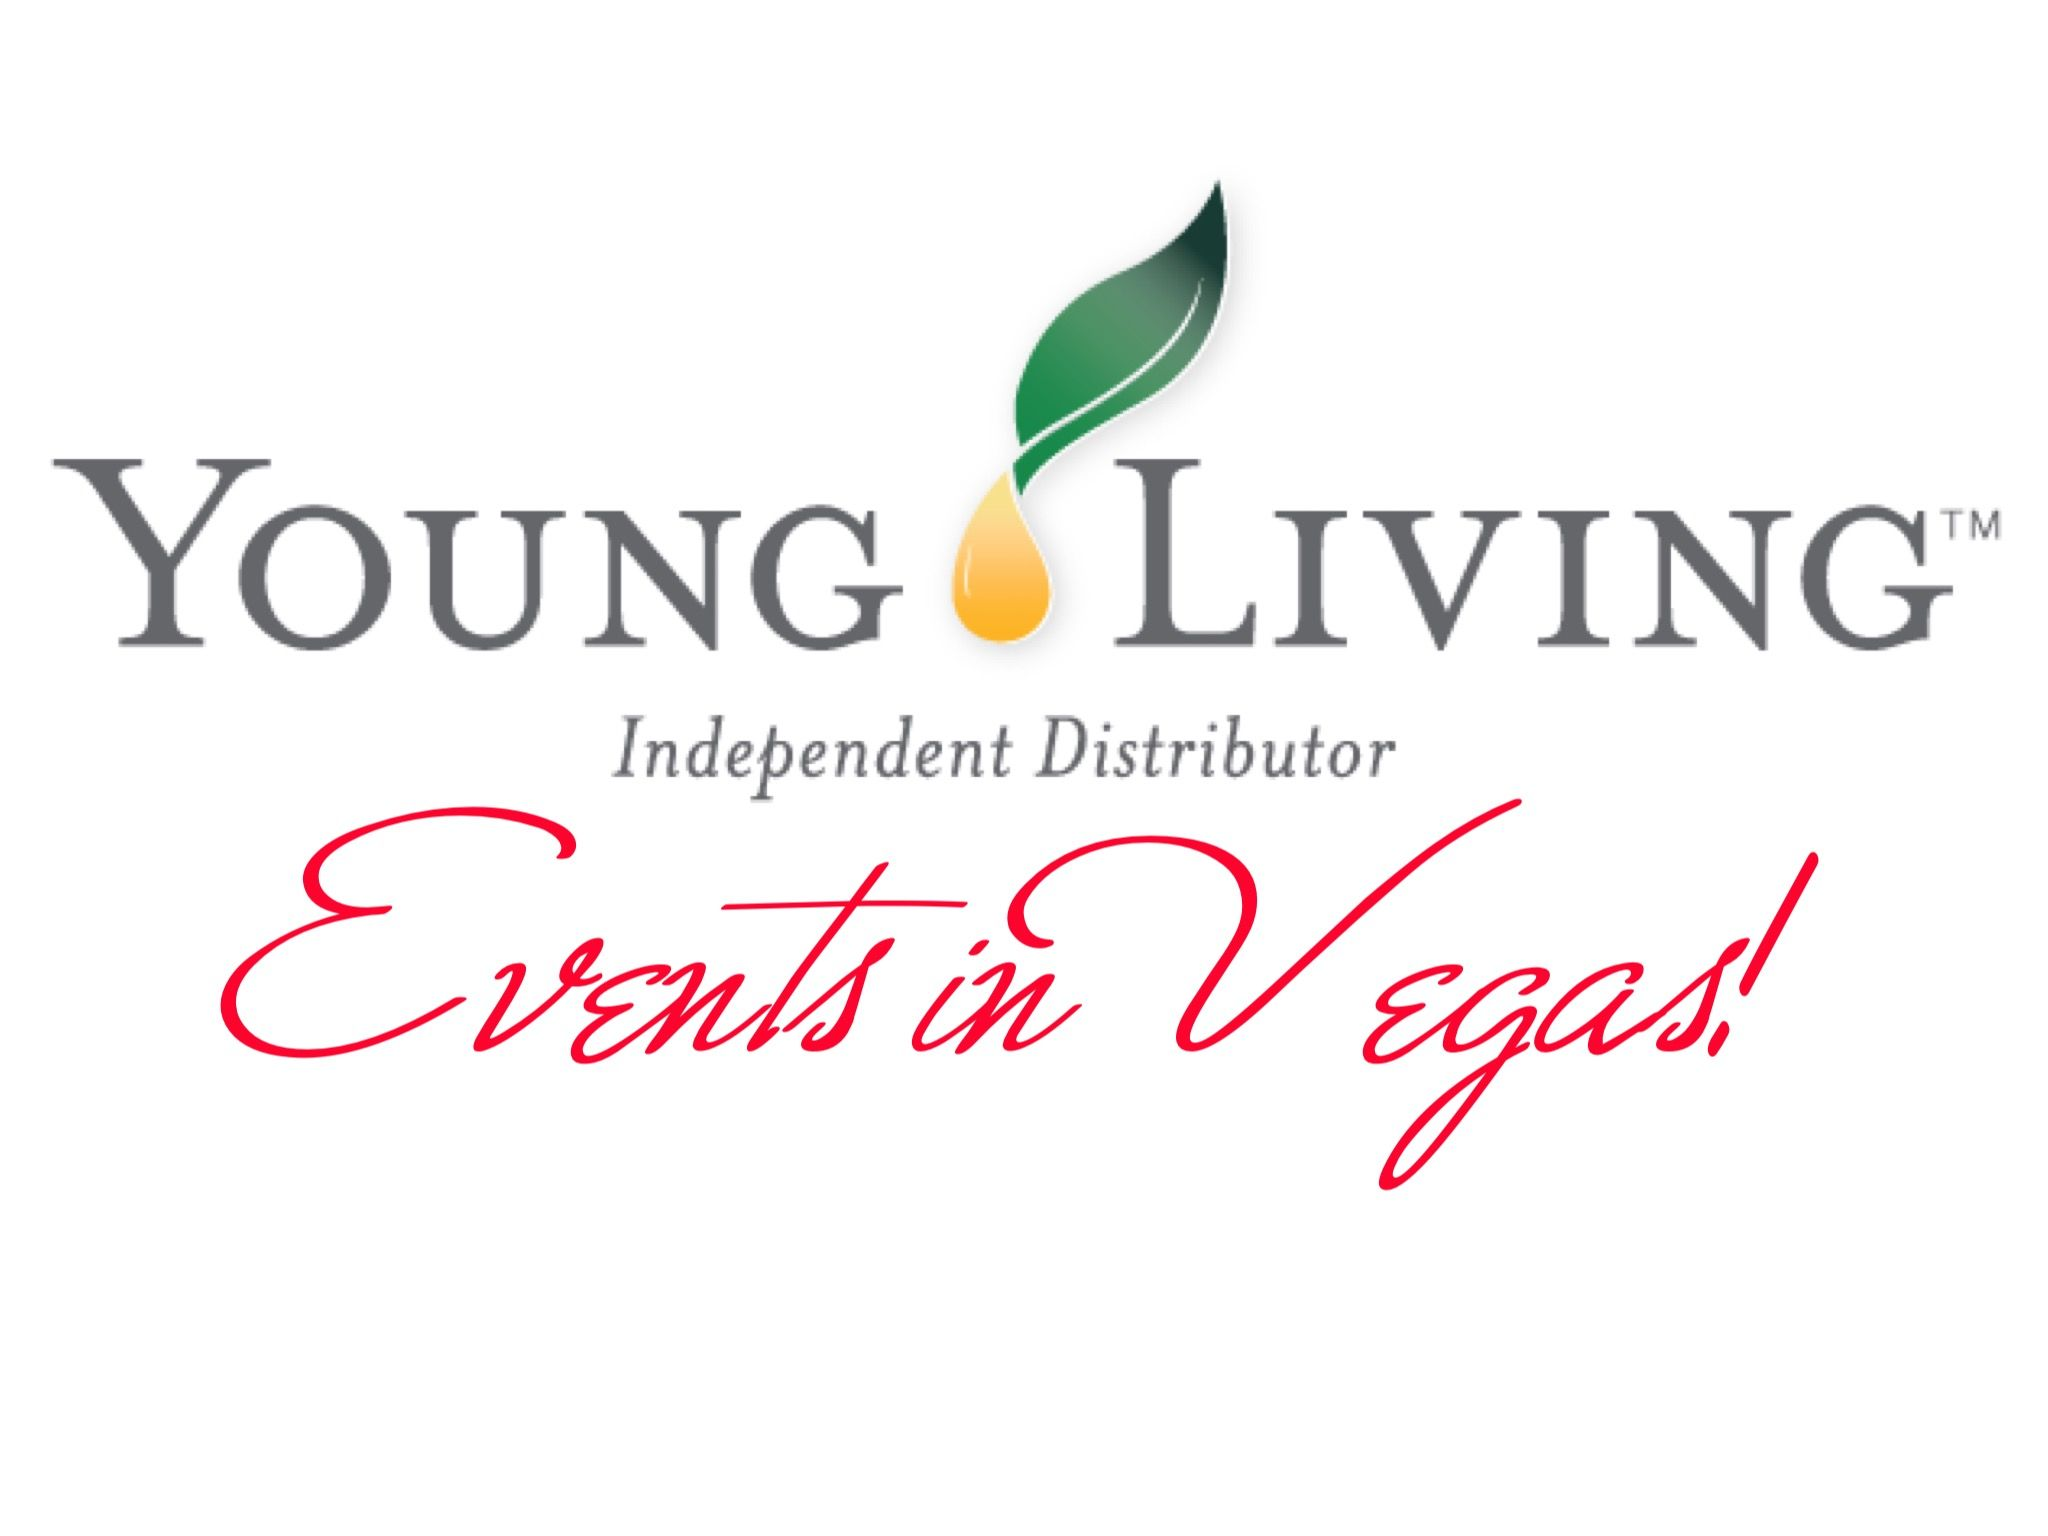 Look in the comment section to see Young Living Events in Vegas or coming out of Vegas Online! - http://www.thehealthyhabitcoach.com/blog/